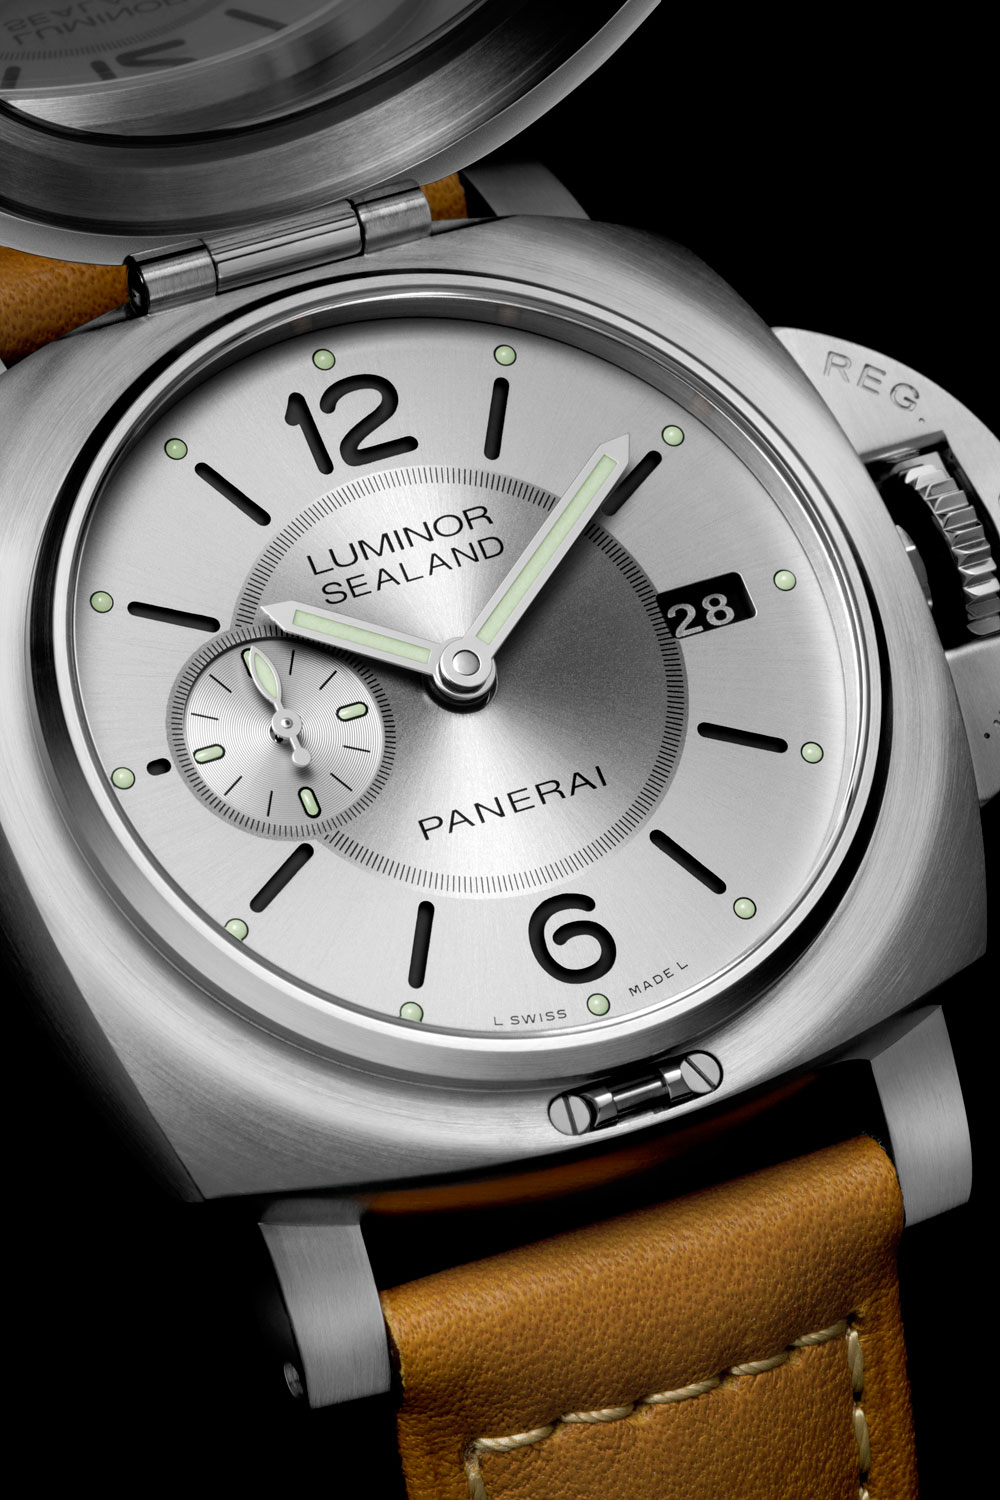 Reloj LUMINOR 1950 SEALAND 3 DAYS AUTOMATIC ACCIAIO – 44mm de Panerai